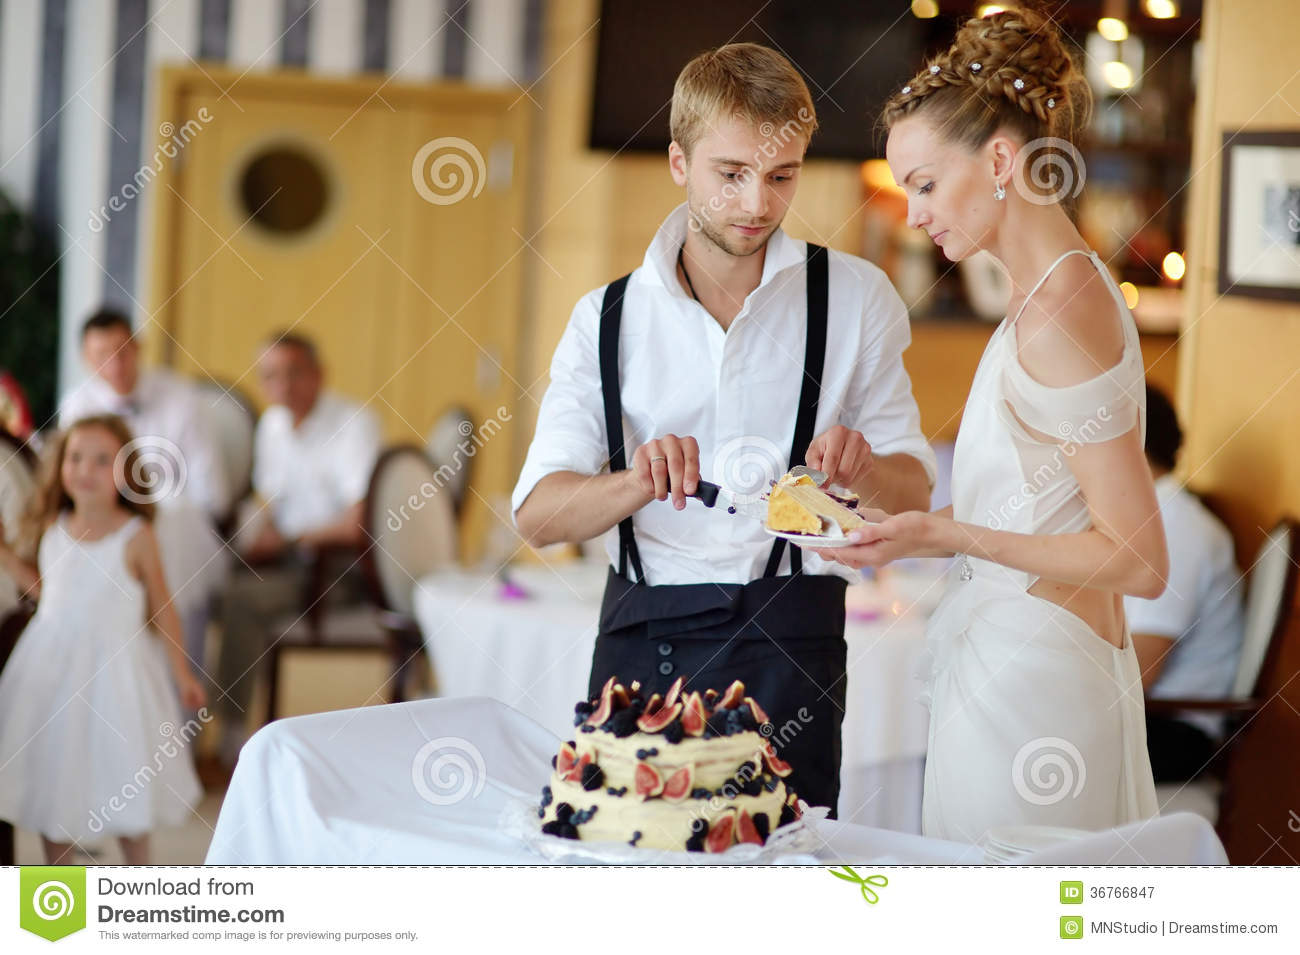 how does the bride and groom cut wedding cake and groom cutting their wedding cake stock image 15365